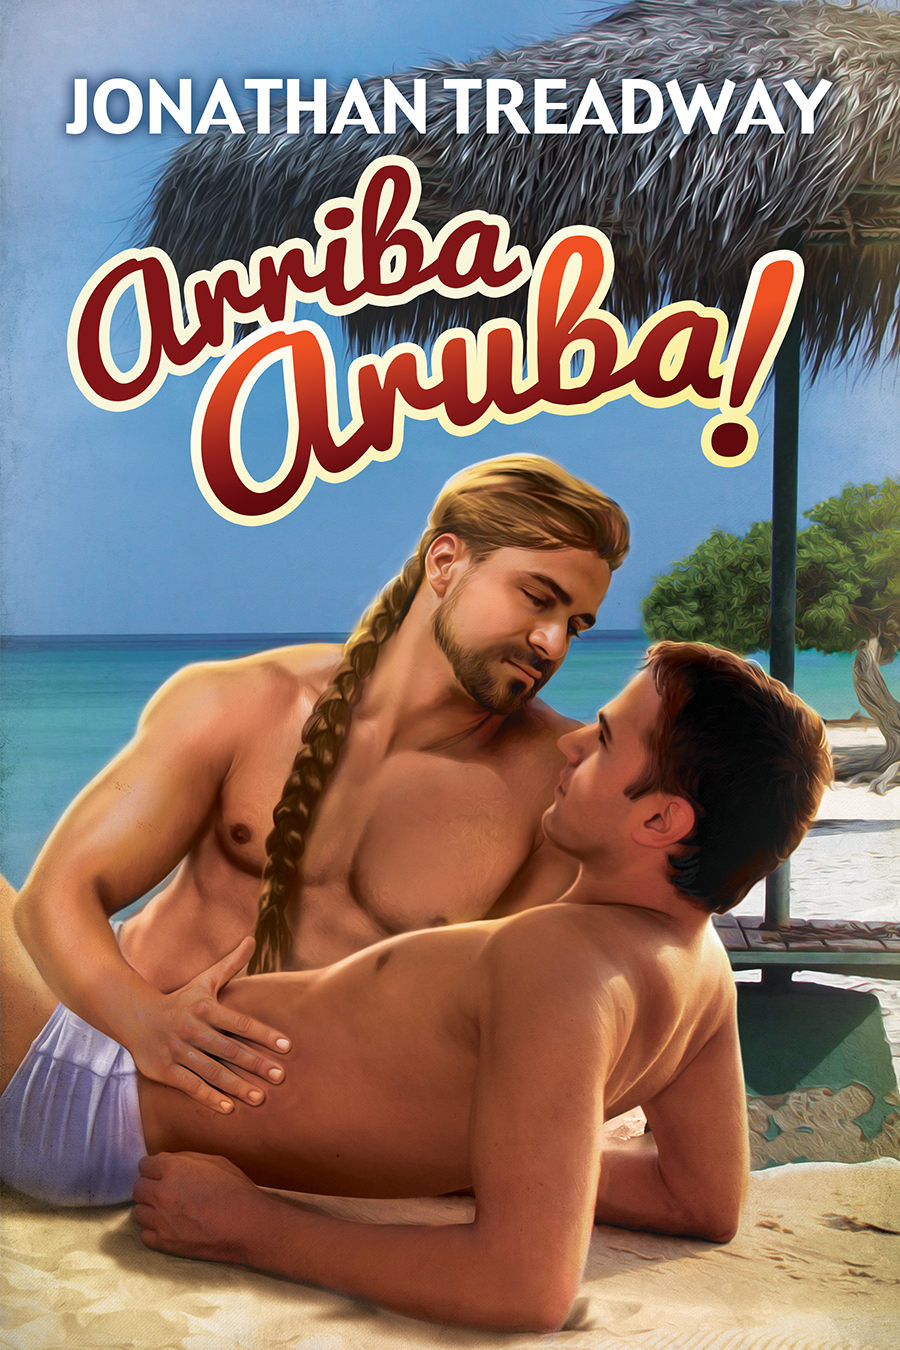 Guest Post and Giveaway: Arriba Aruba! by Jonathan Treadway